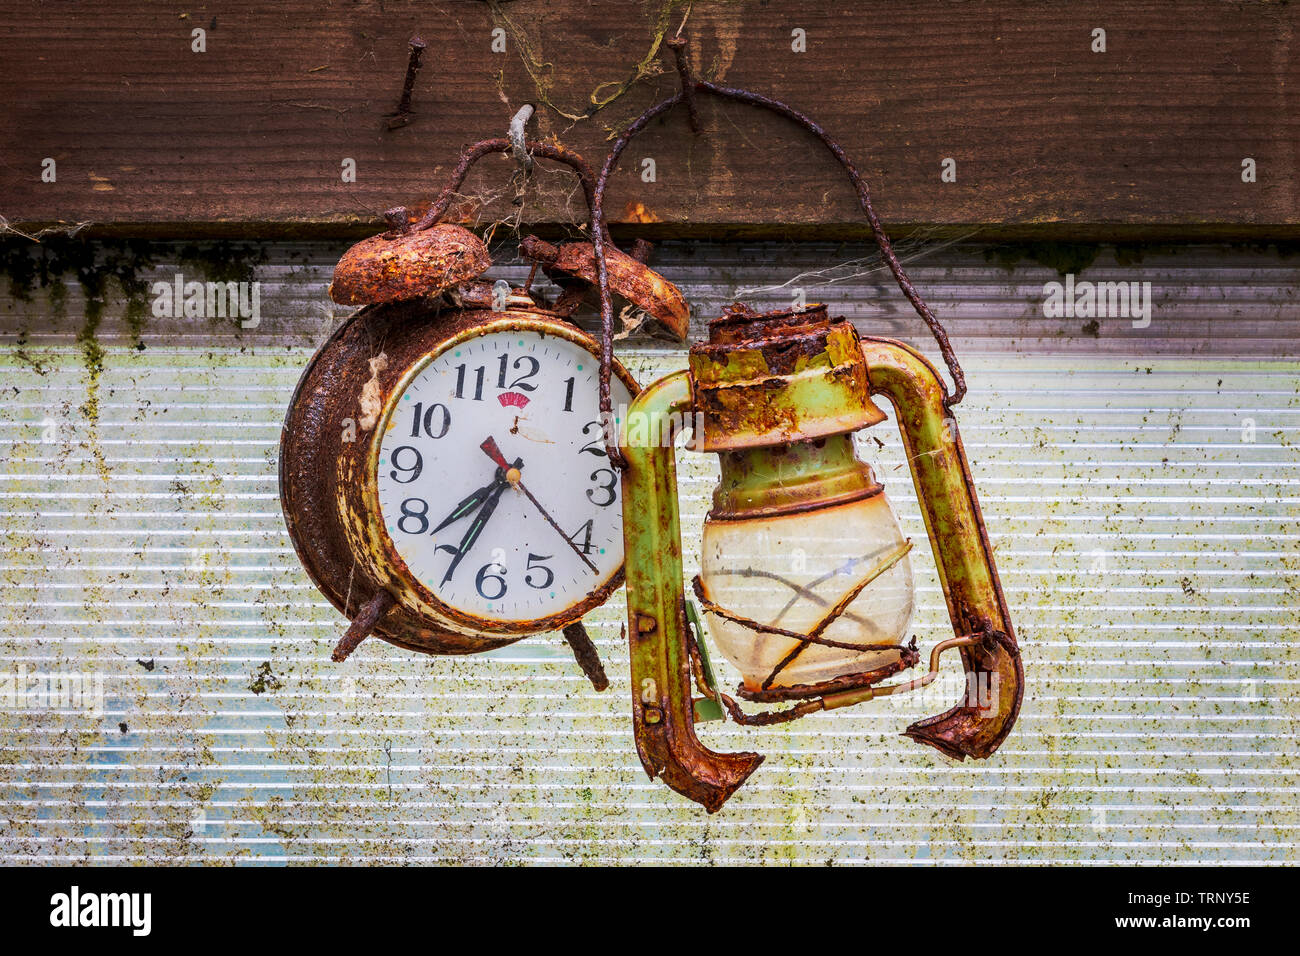 Old and rusty alarm clock hanging on a nail next to an old broken lantern, in a garden shed Stock Photo